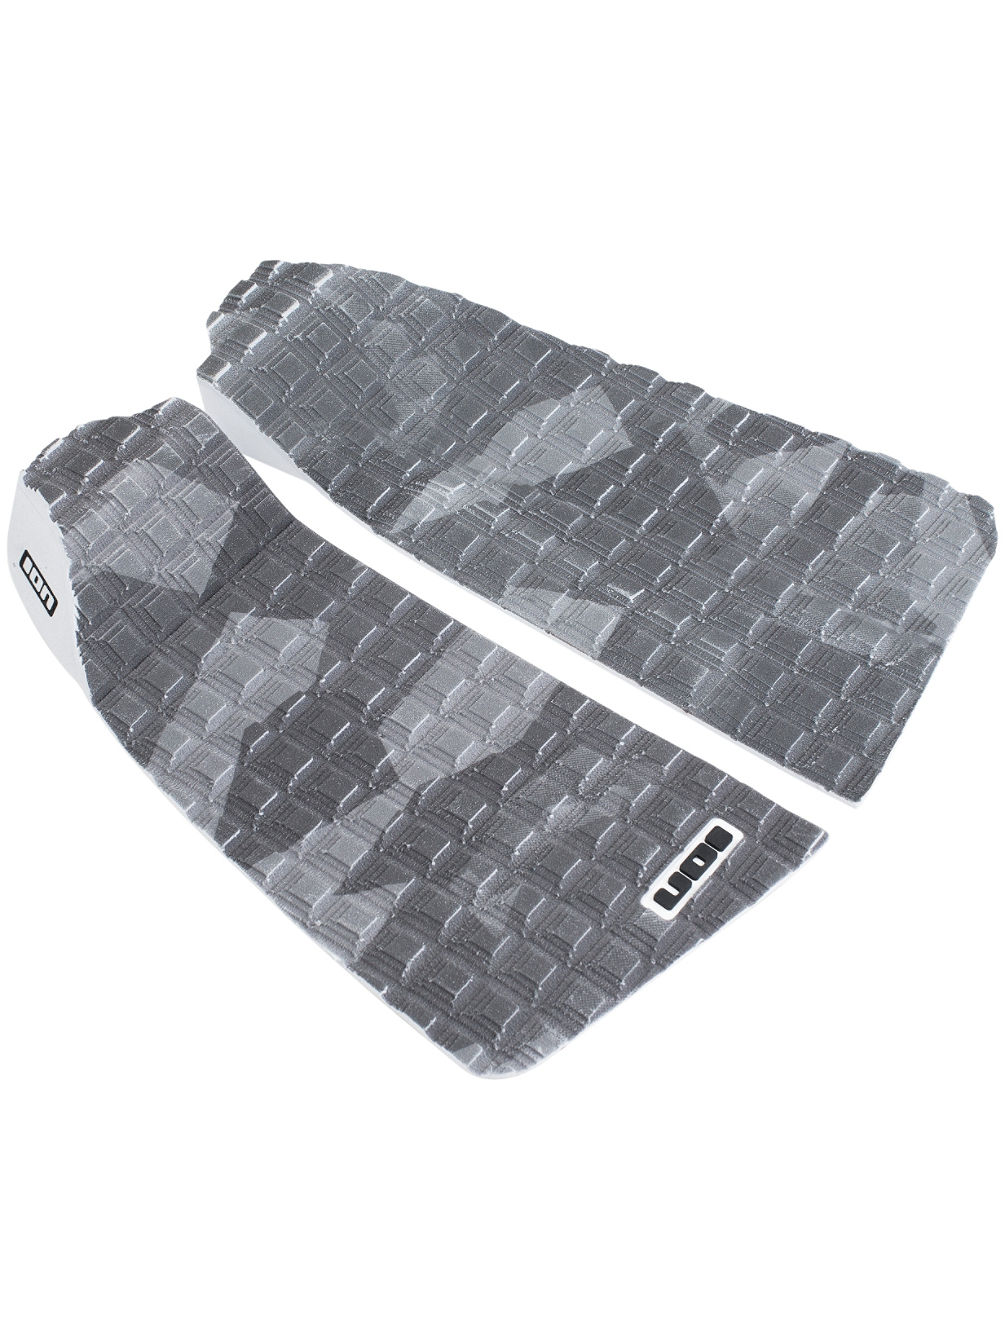 Camouflage (2Pcs) Traction Pad